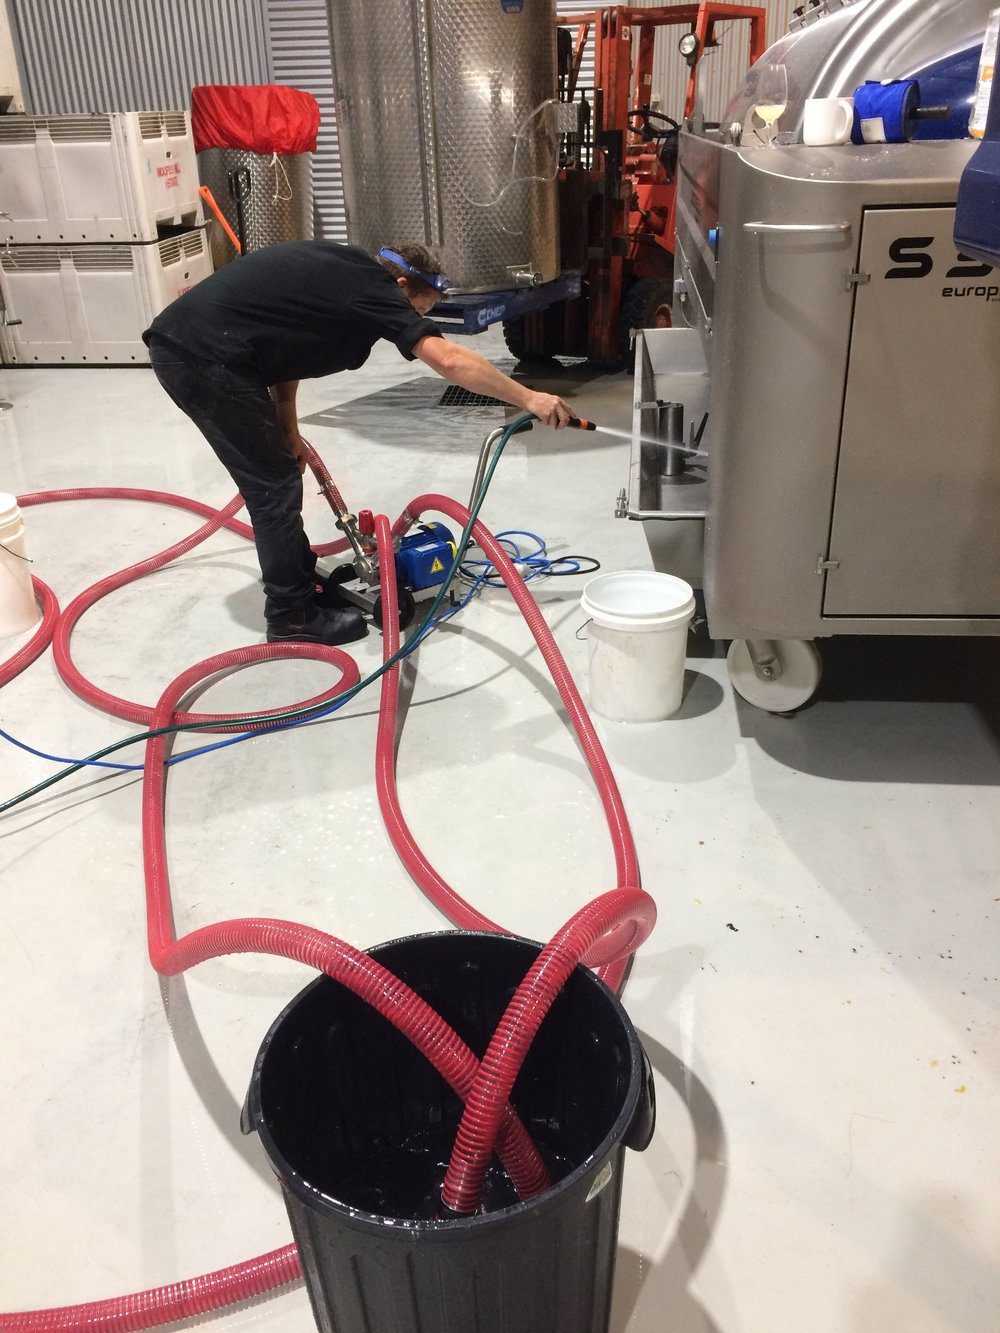 What they don't tell you at winemaker school: winemaking is really 70% cleaning, 10% moving hoses and pumps around, 10% forklift driving. You do the maths.